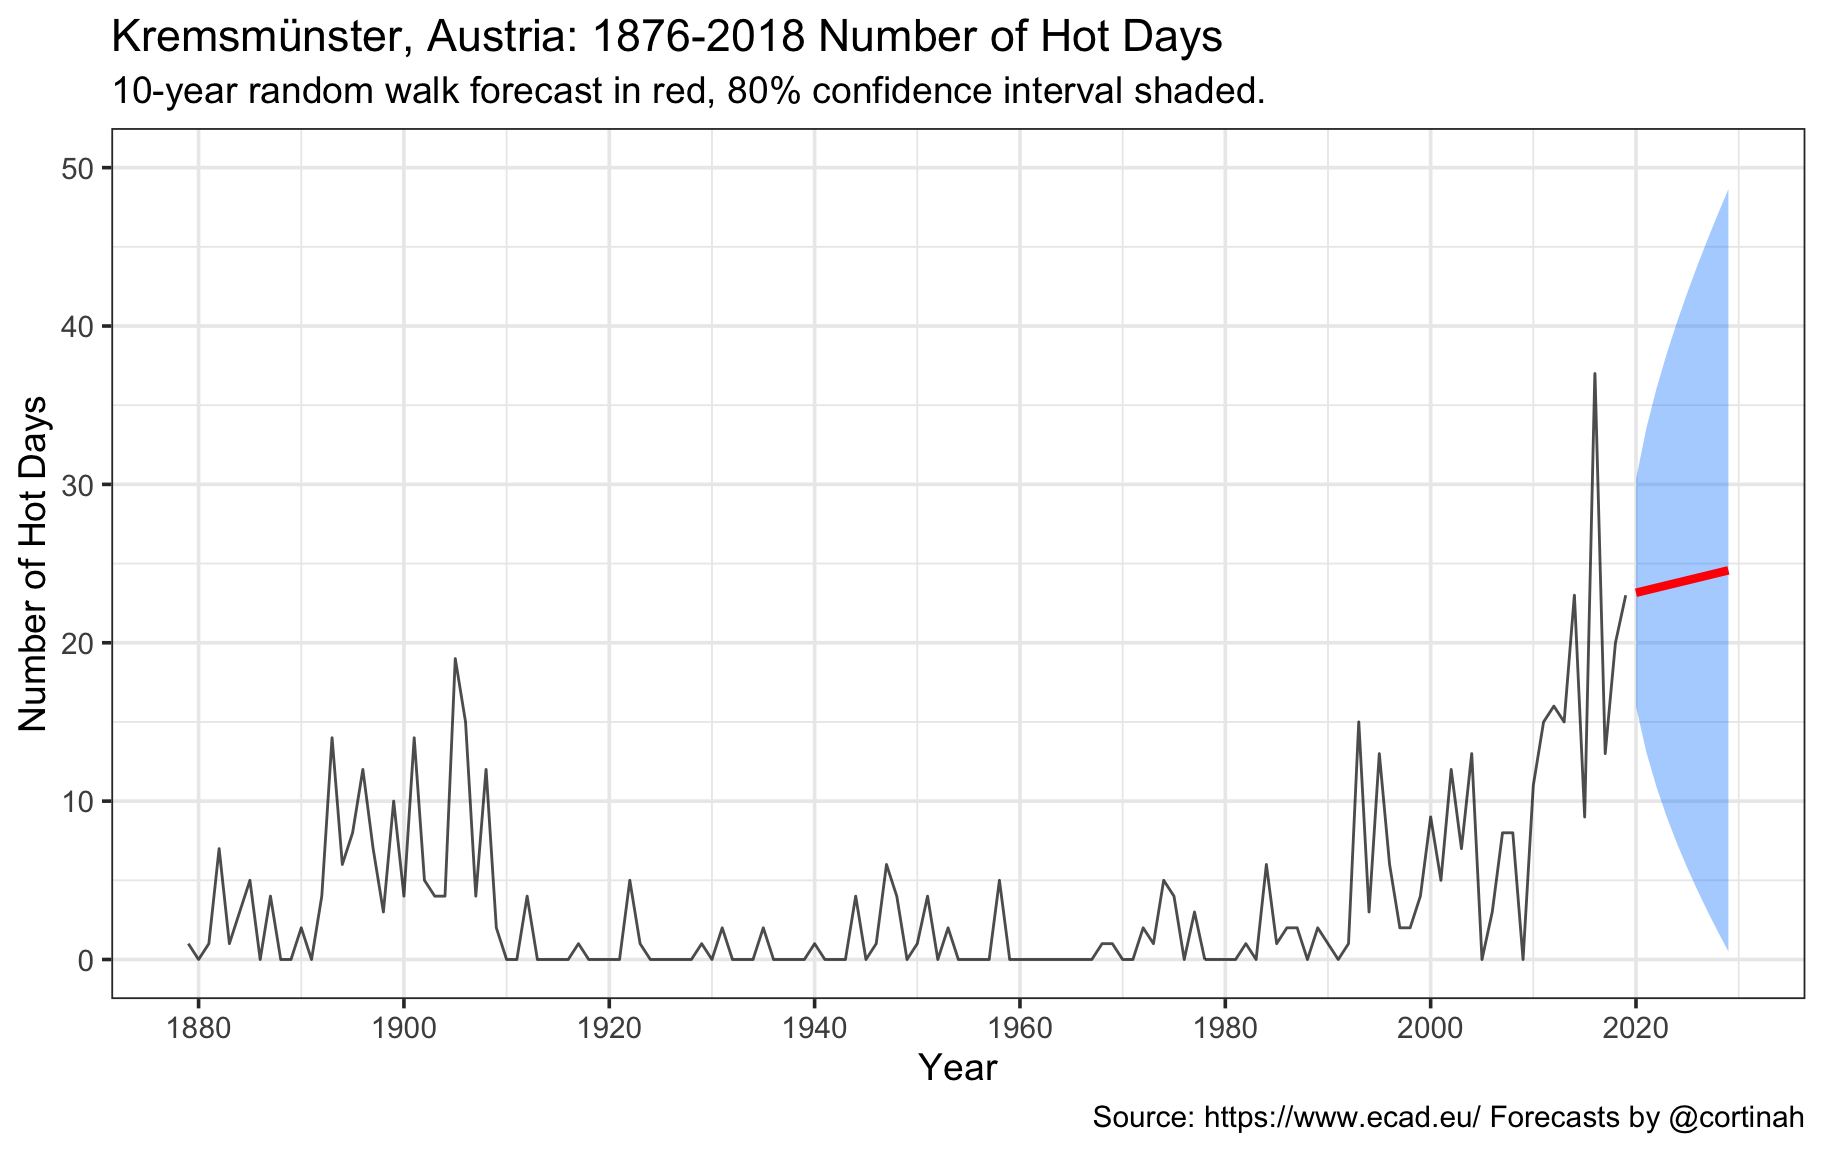 Climate change: Modeling 140+ years of temperature data with tsibble and fable